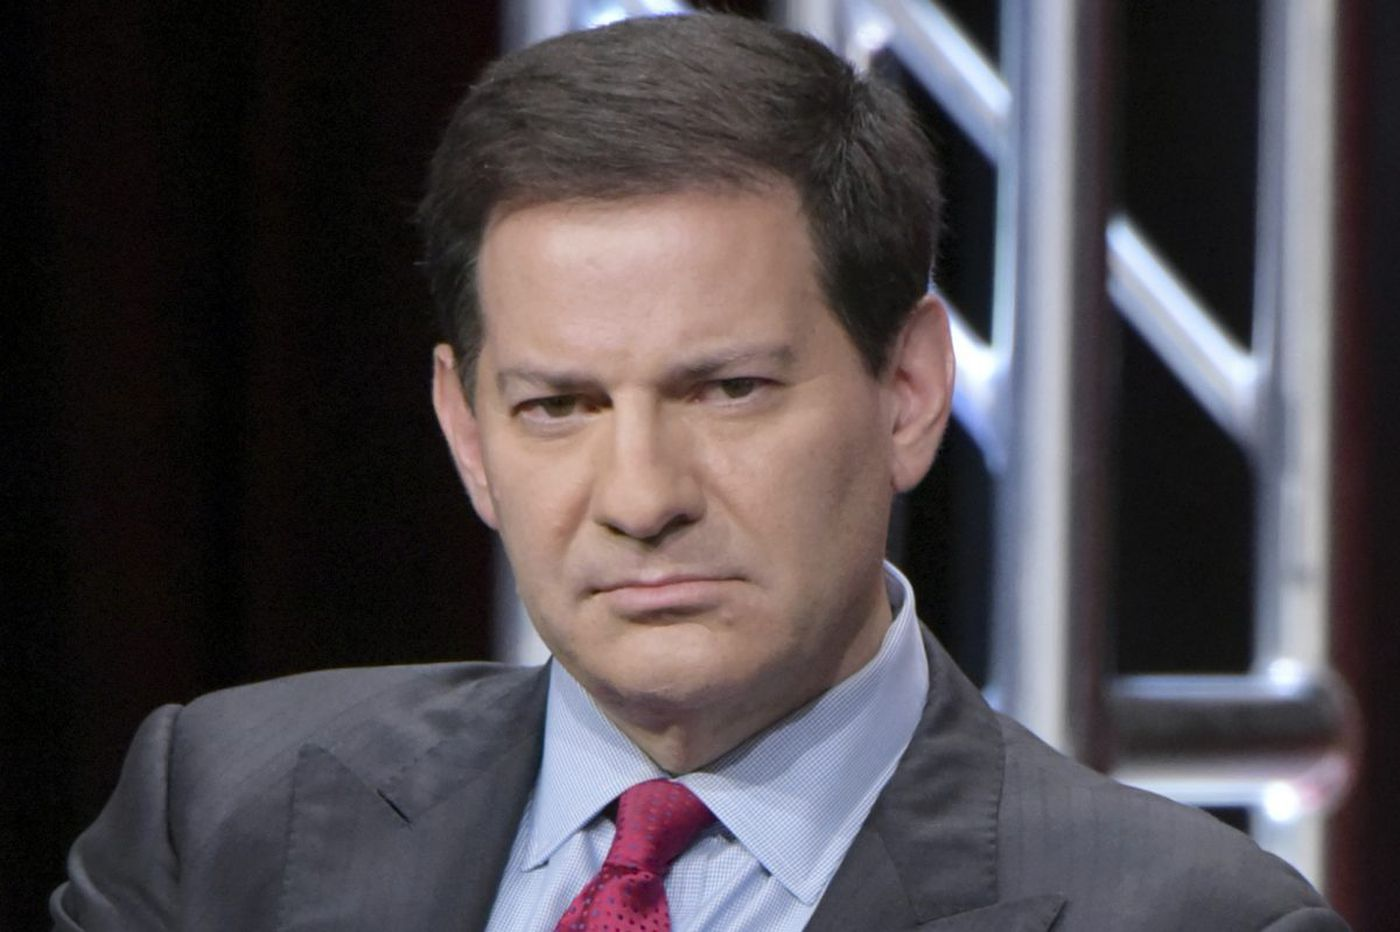 NBC political analyst Mark Halperin apologizes after five women accuse him of sexual harassment, CNN reports